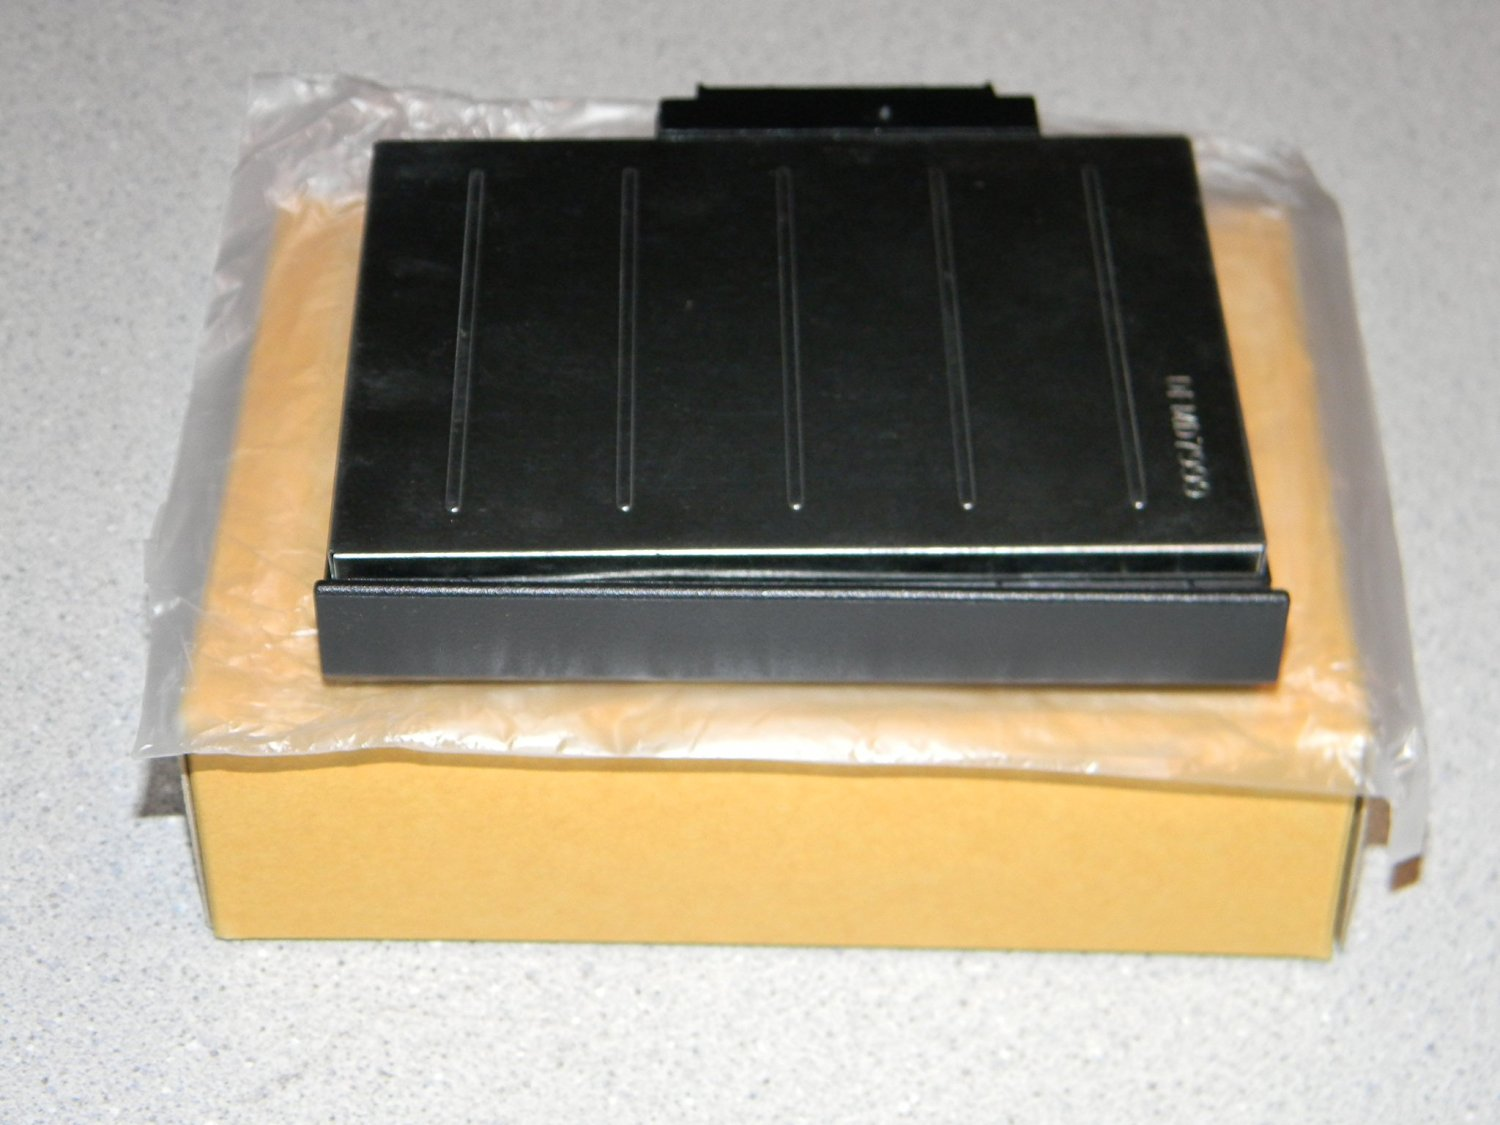 Panasonic Toughbook CF-51 Hard Drive Caddy Complete Brand New For All CF-51's